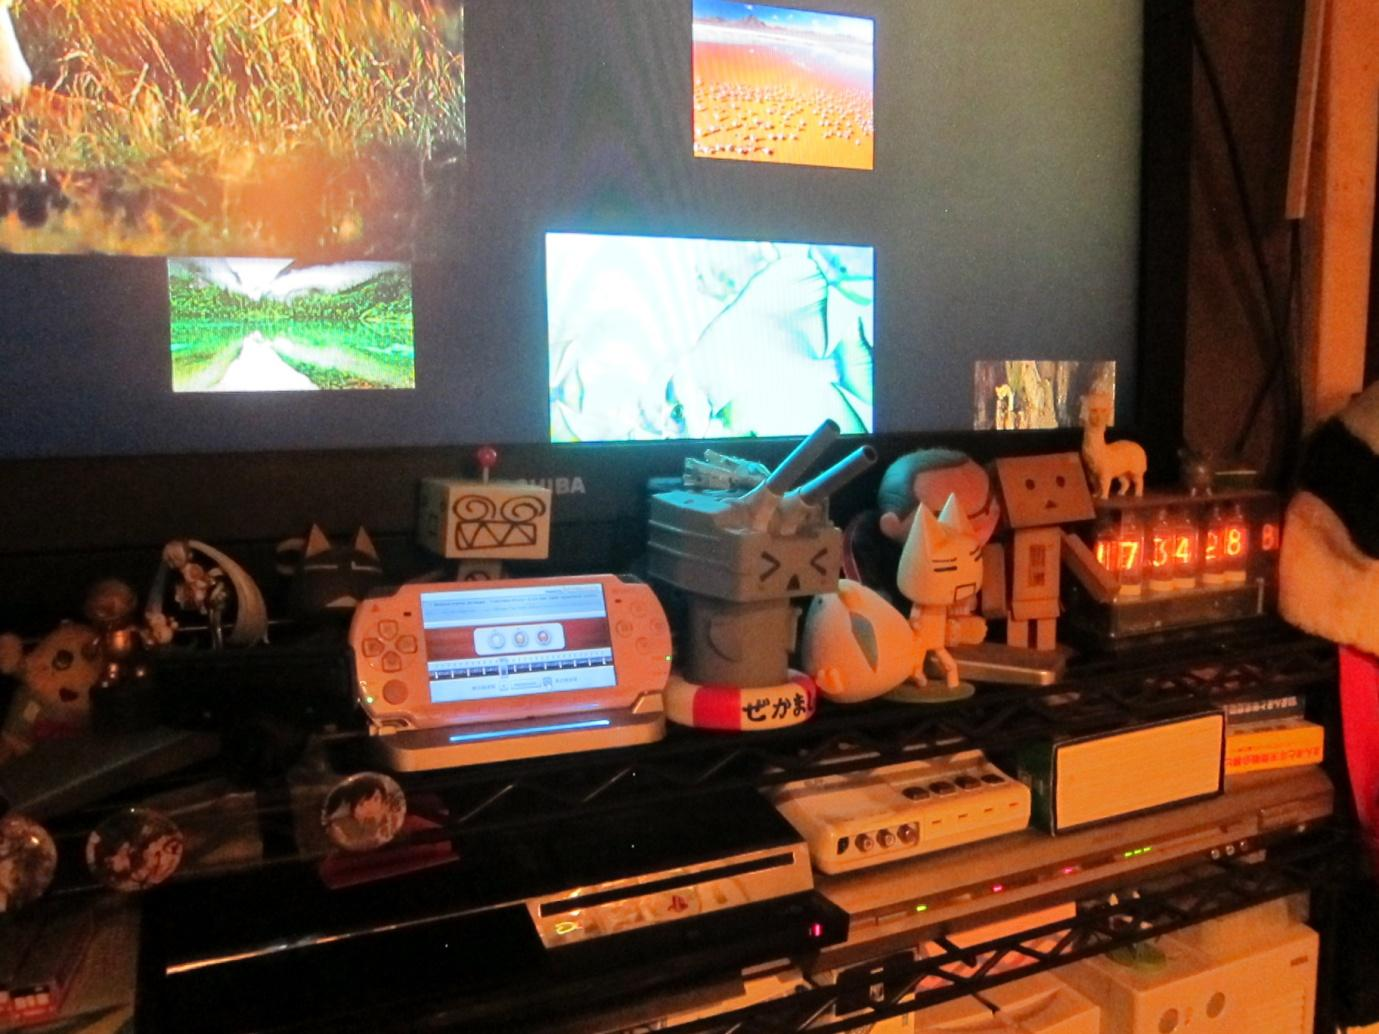 C:\Users\J\Pictures\TOKYO NOV 2016\GAMEBAR A BUTTON\IMG_0337.JPG